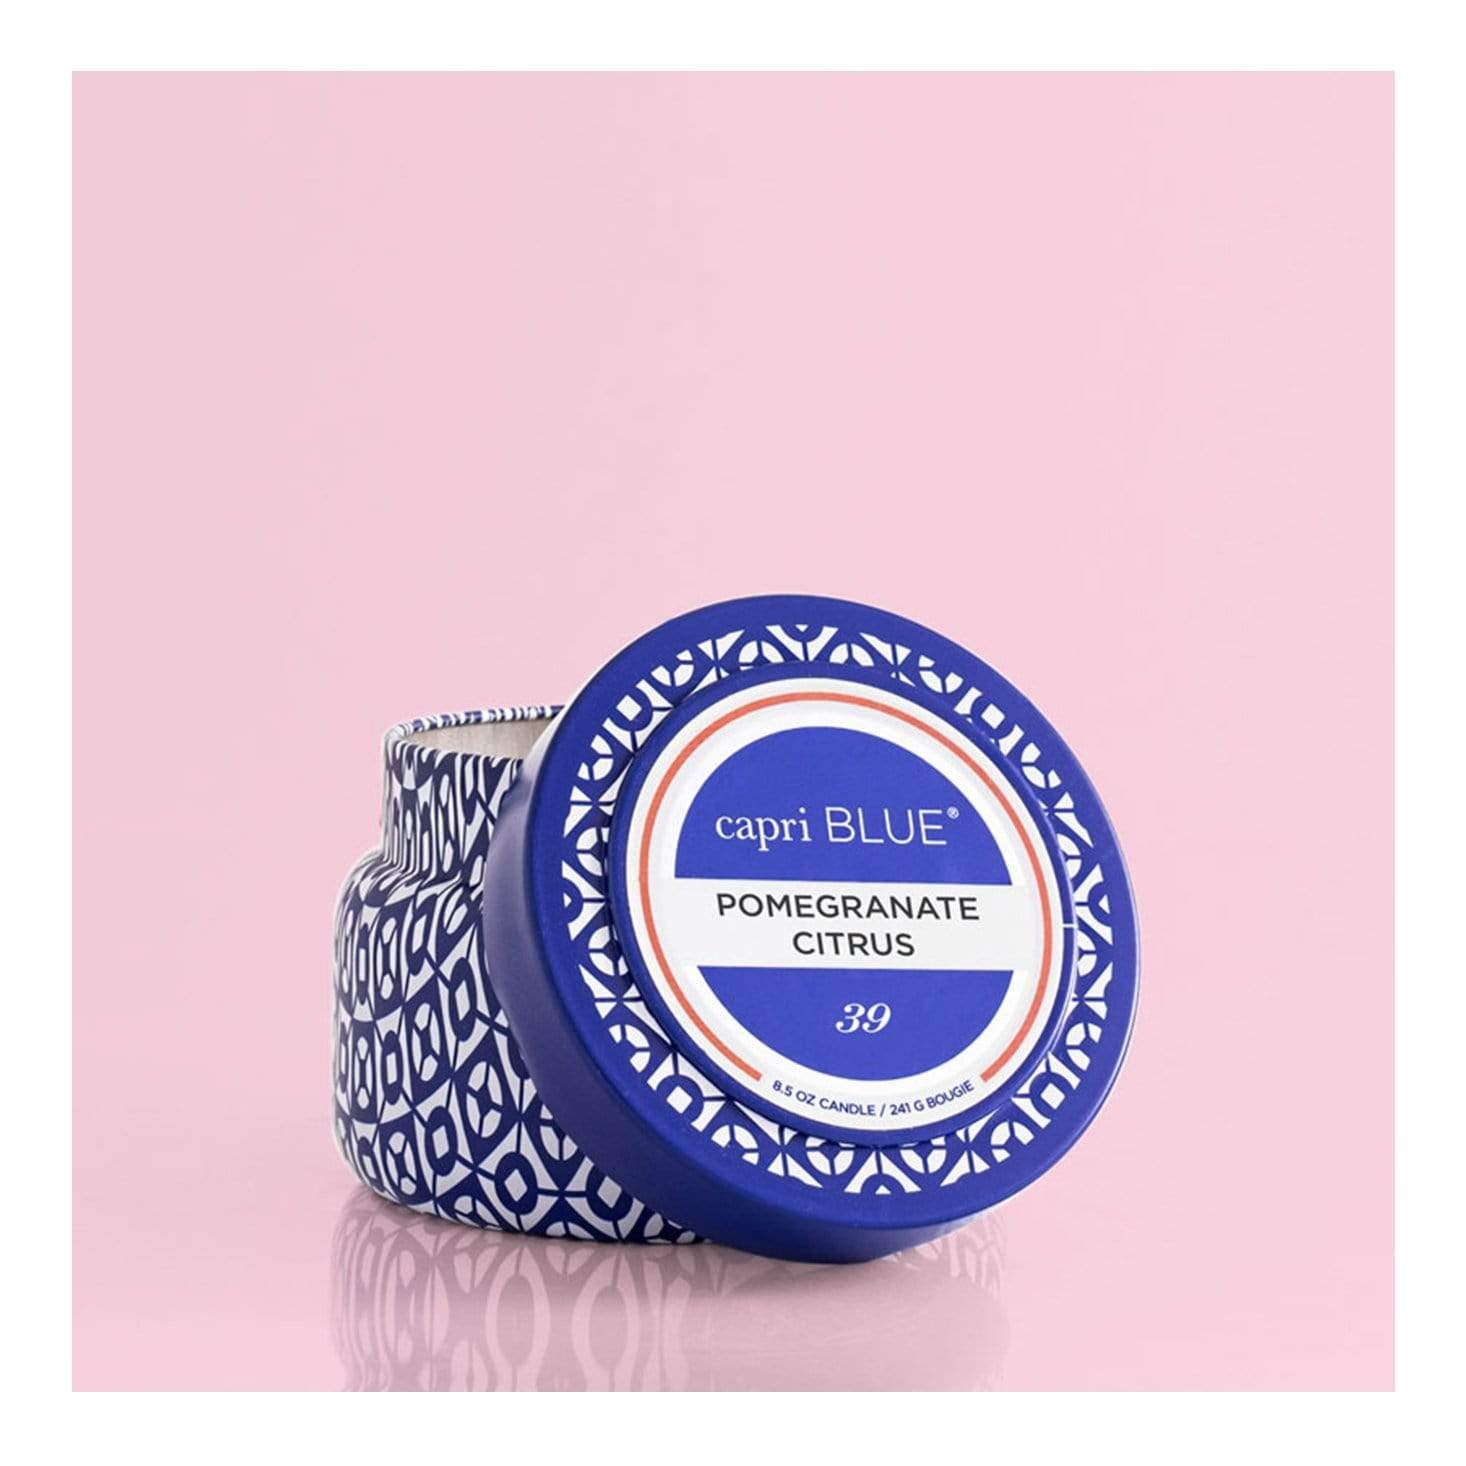 Capri Blue Travel Candle - Pomegranate Citrus